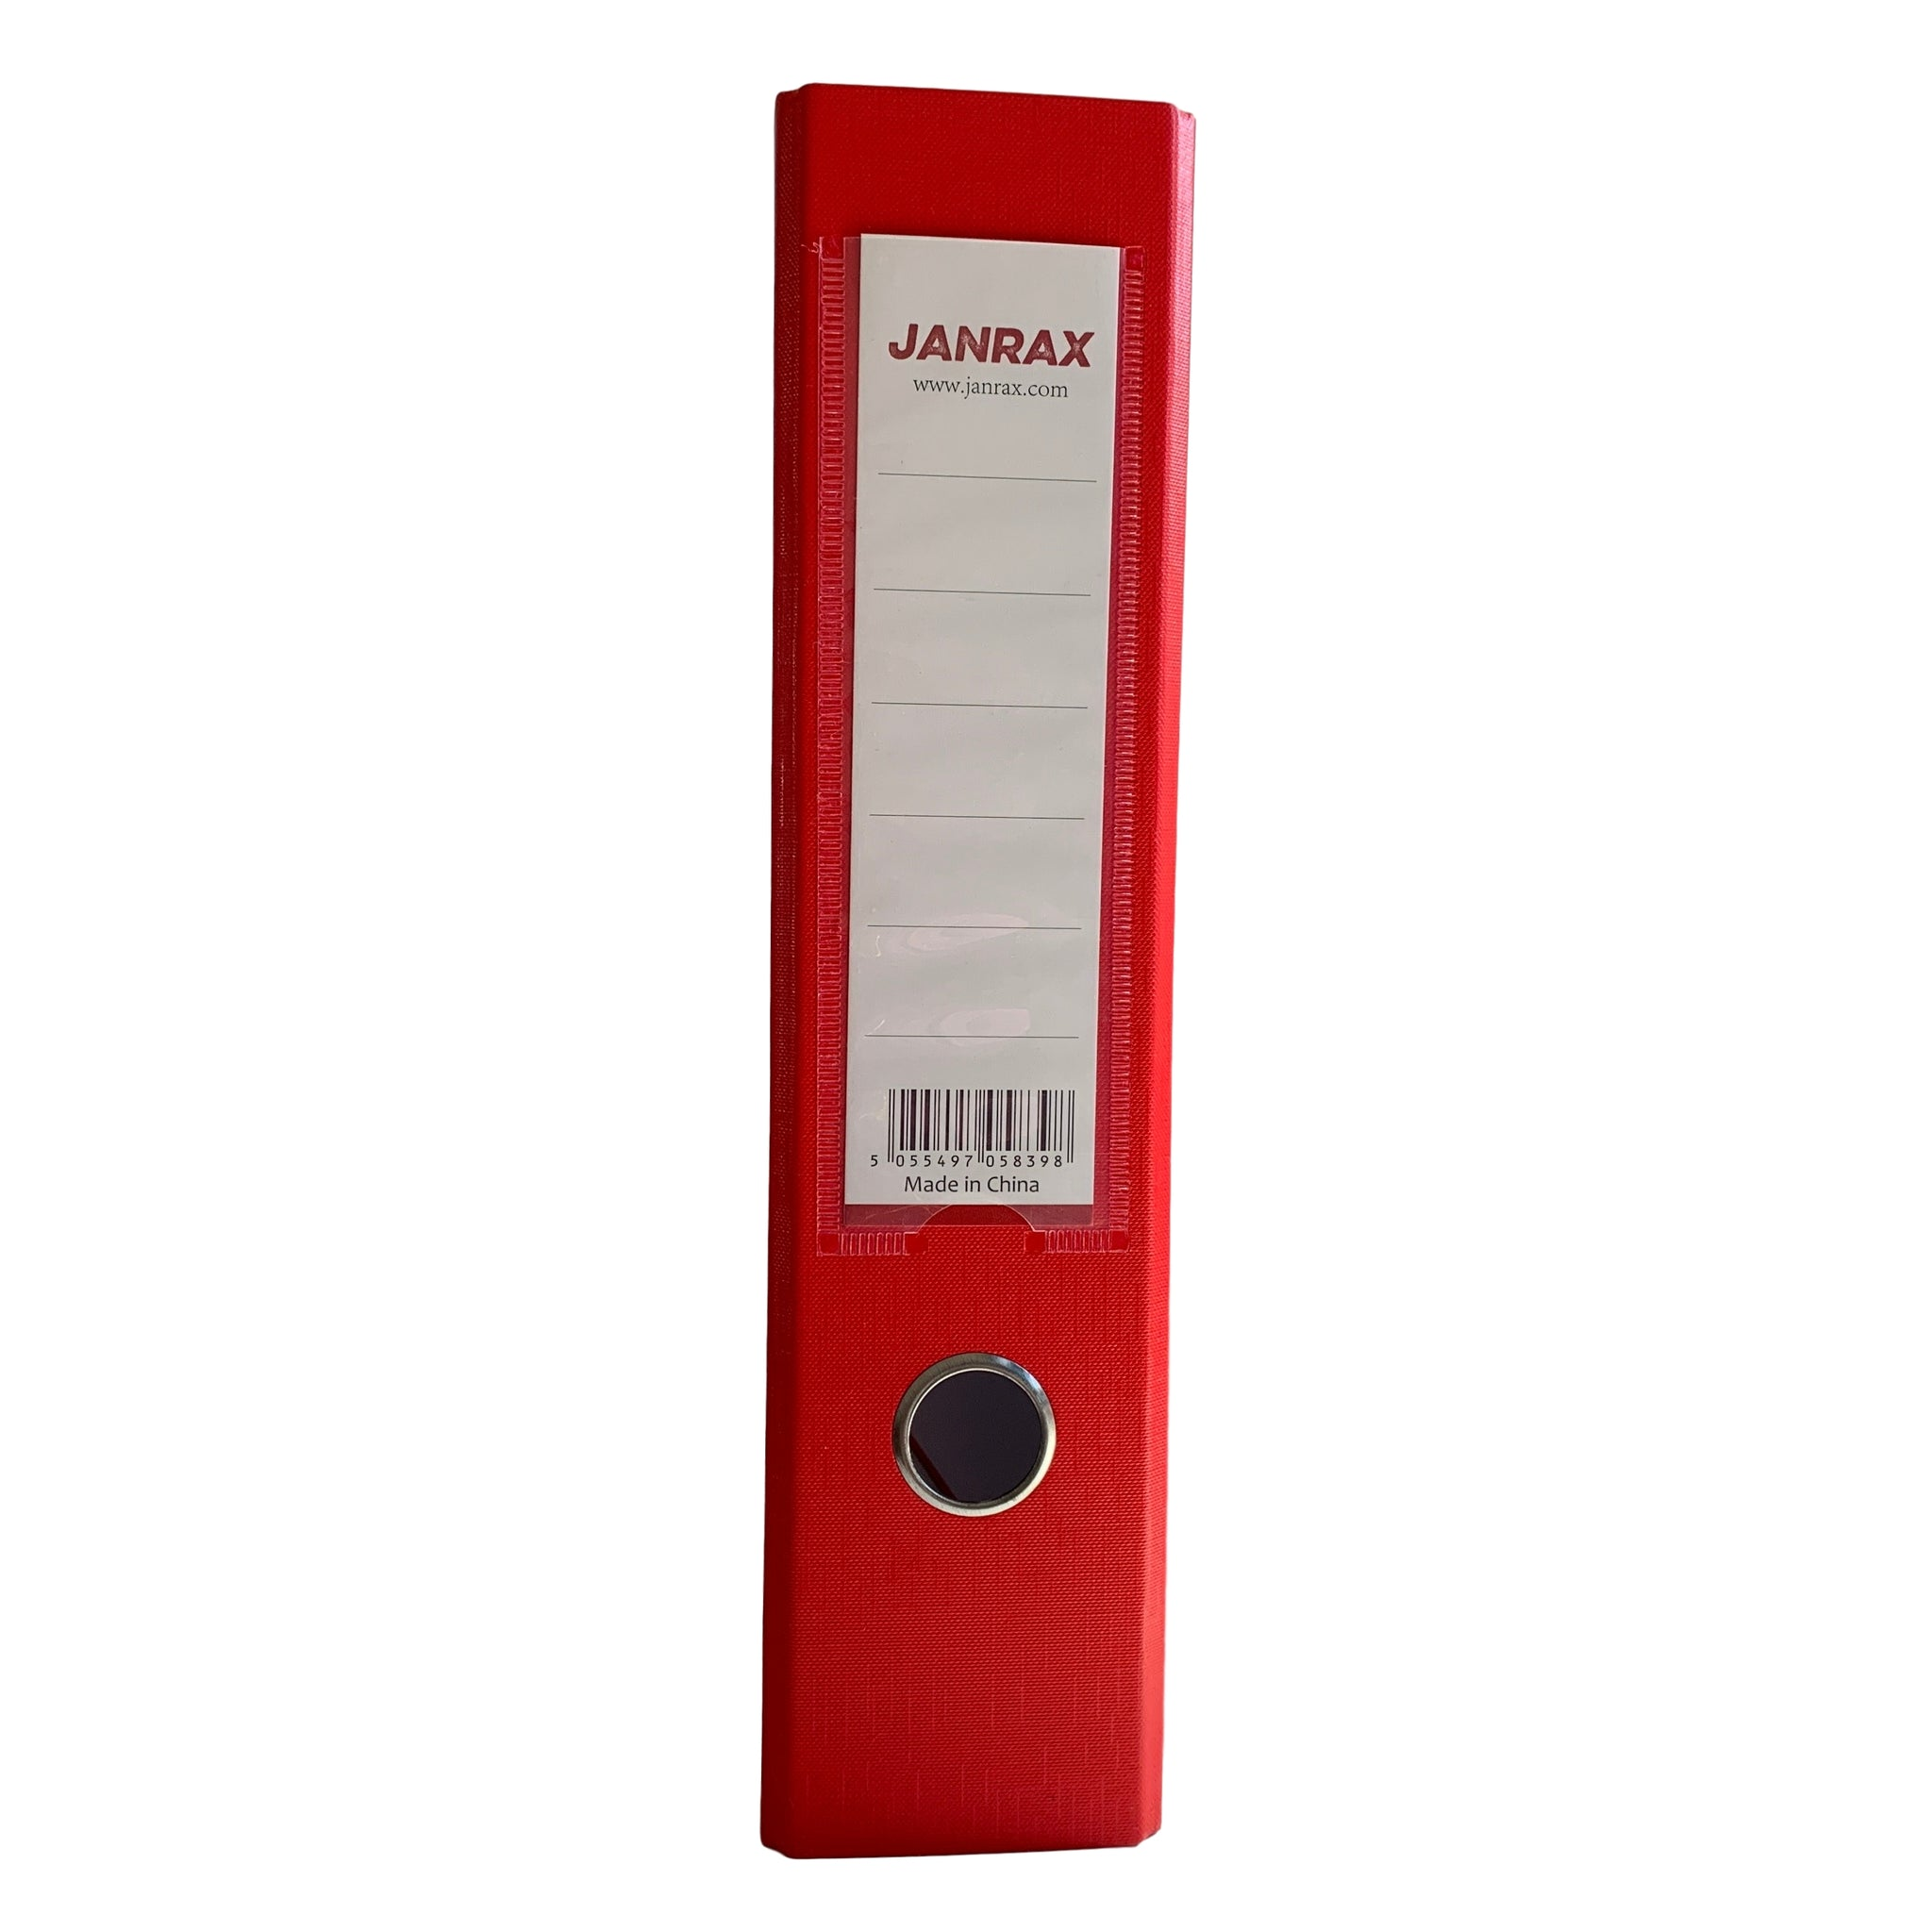 Pack of 10 A4 Red Paperbacked Lever Arch Files by Janrax